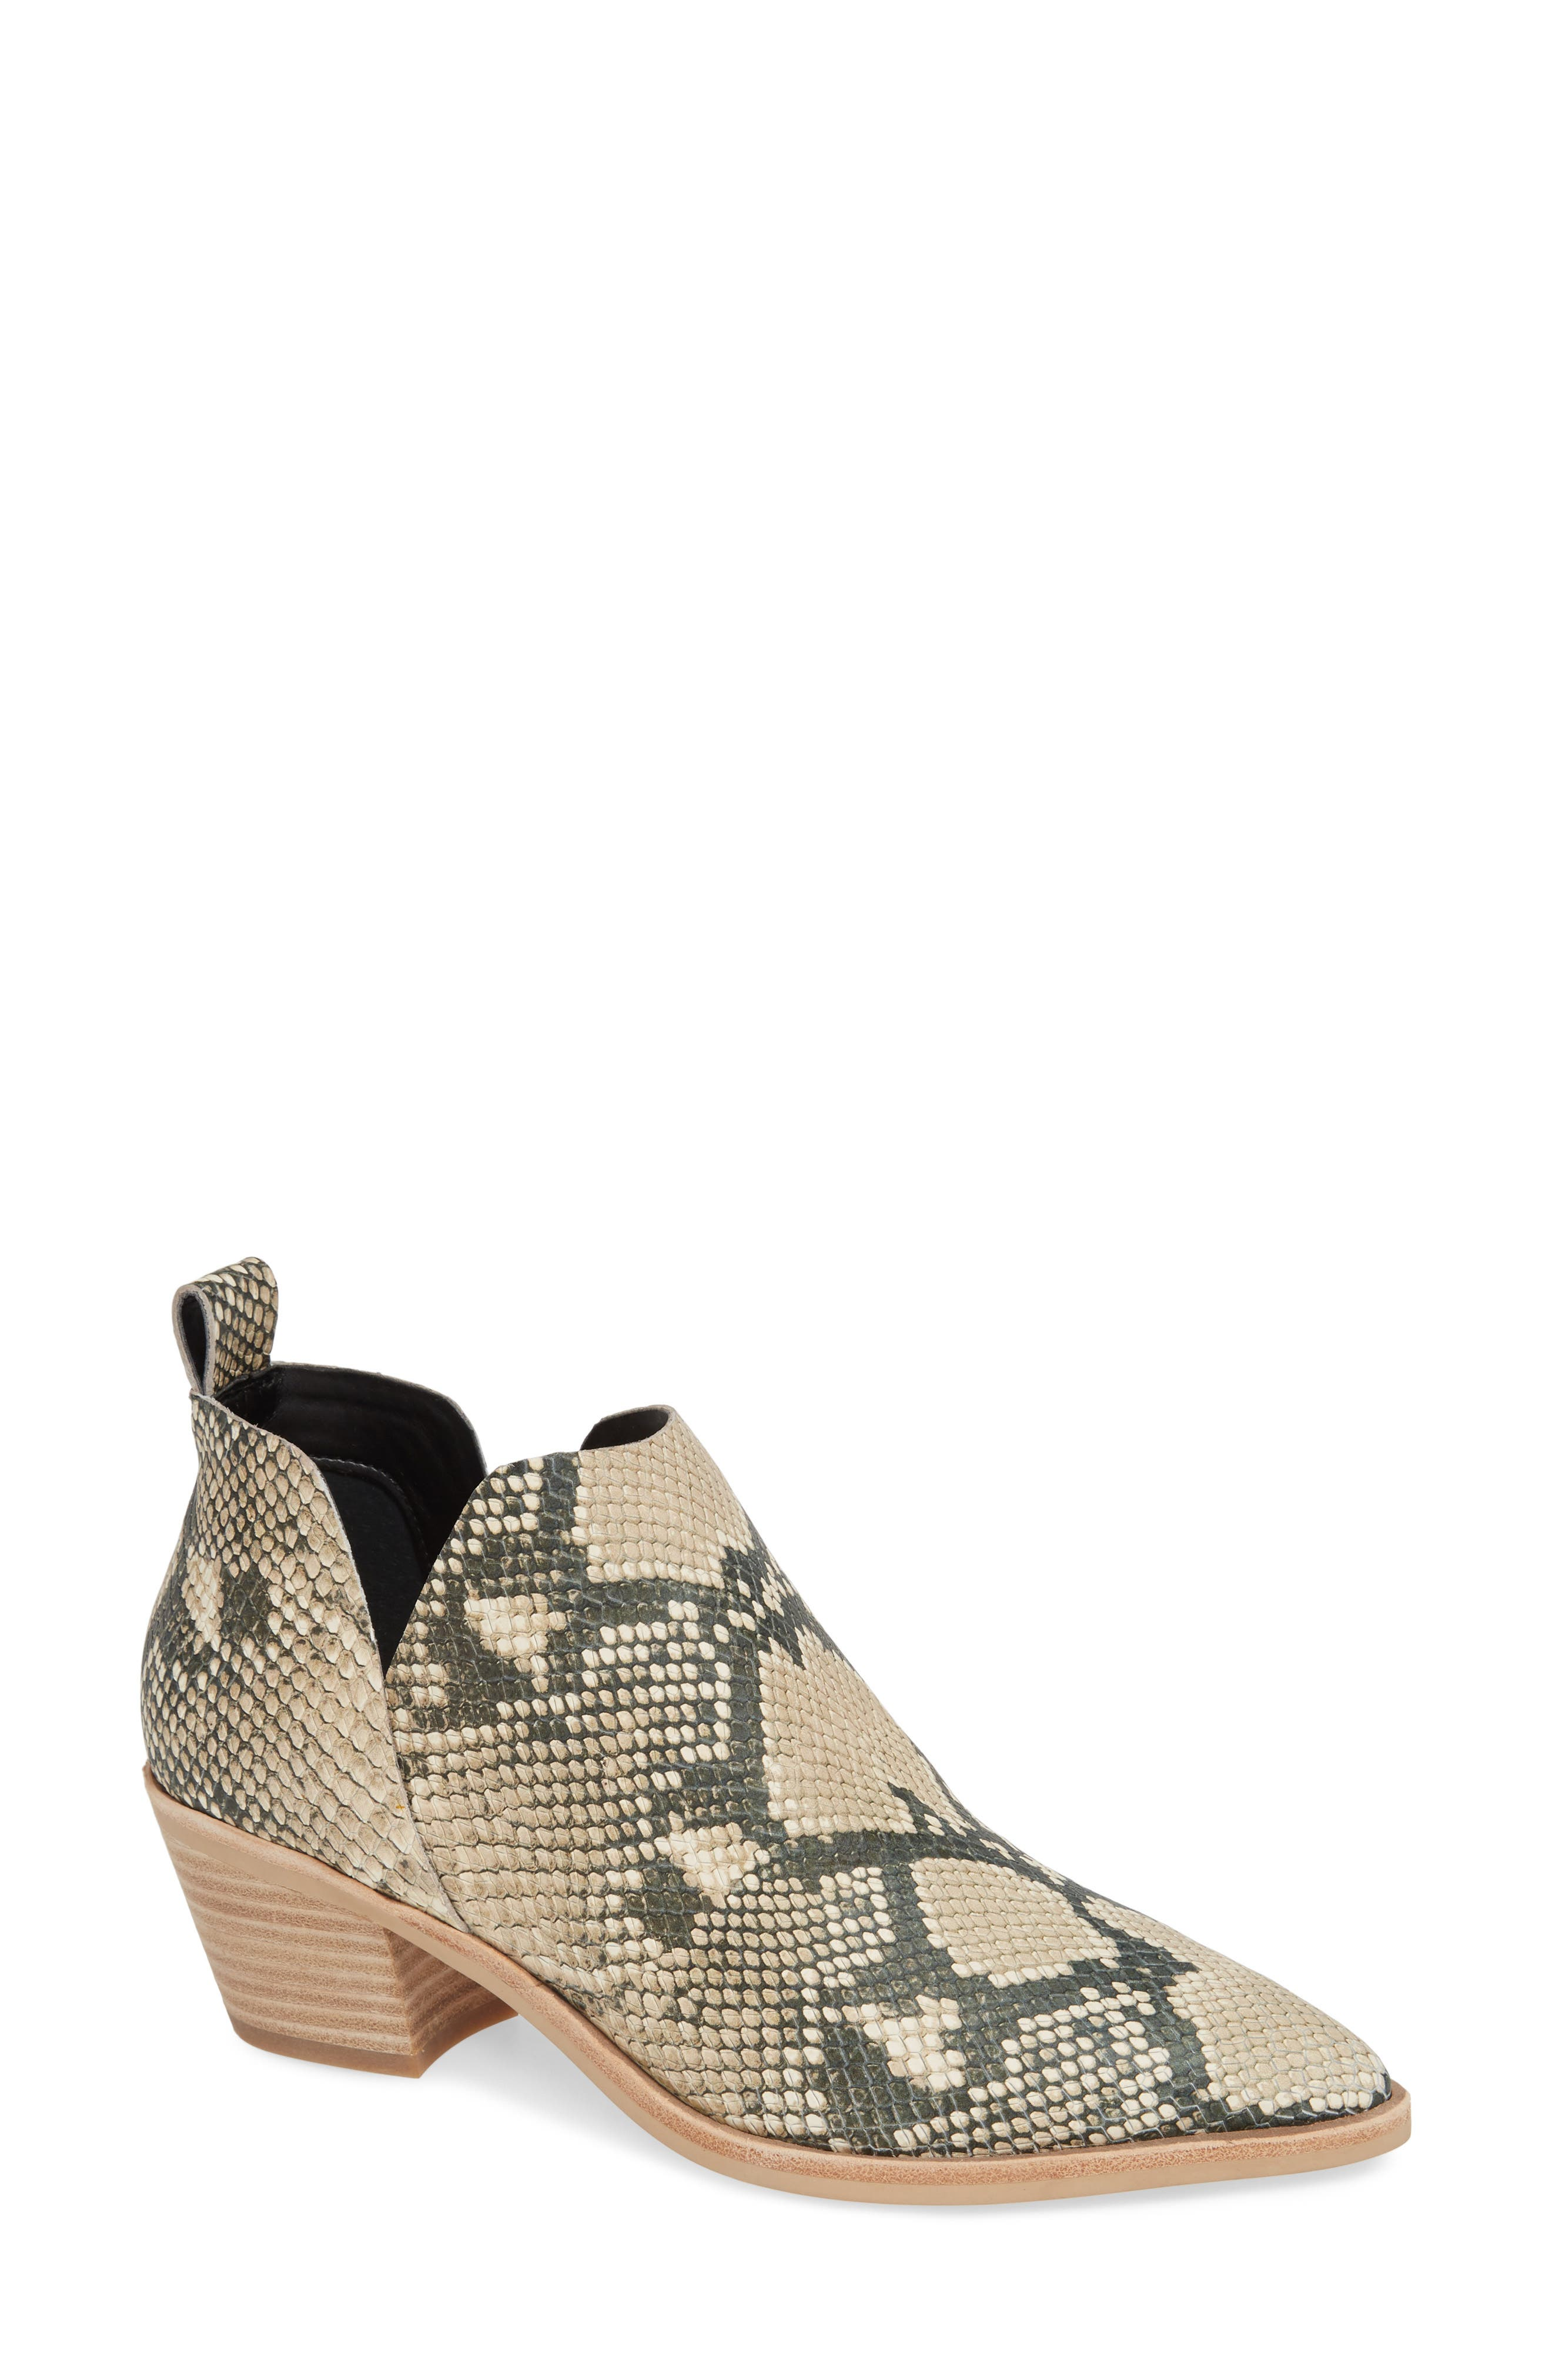 DOLCE VITA,                             Sonni Pointy Toe Bootie,                             Main thumbnail 1, color,                             SNAKE PRINT EMBOSSED LEATHER